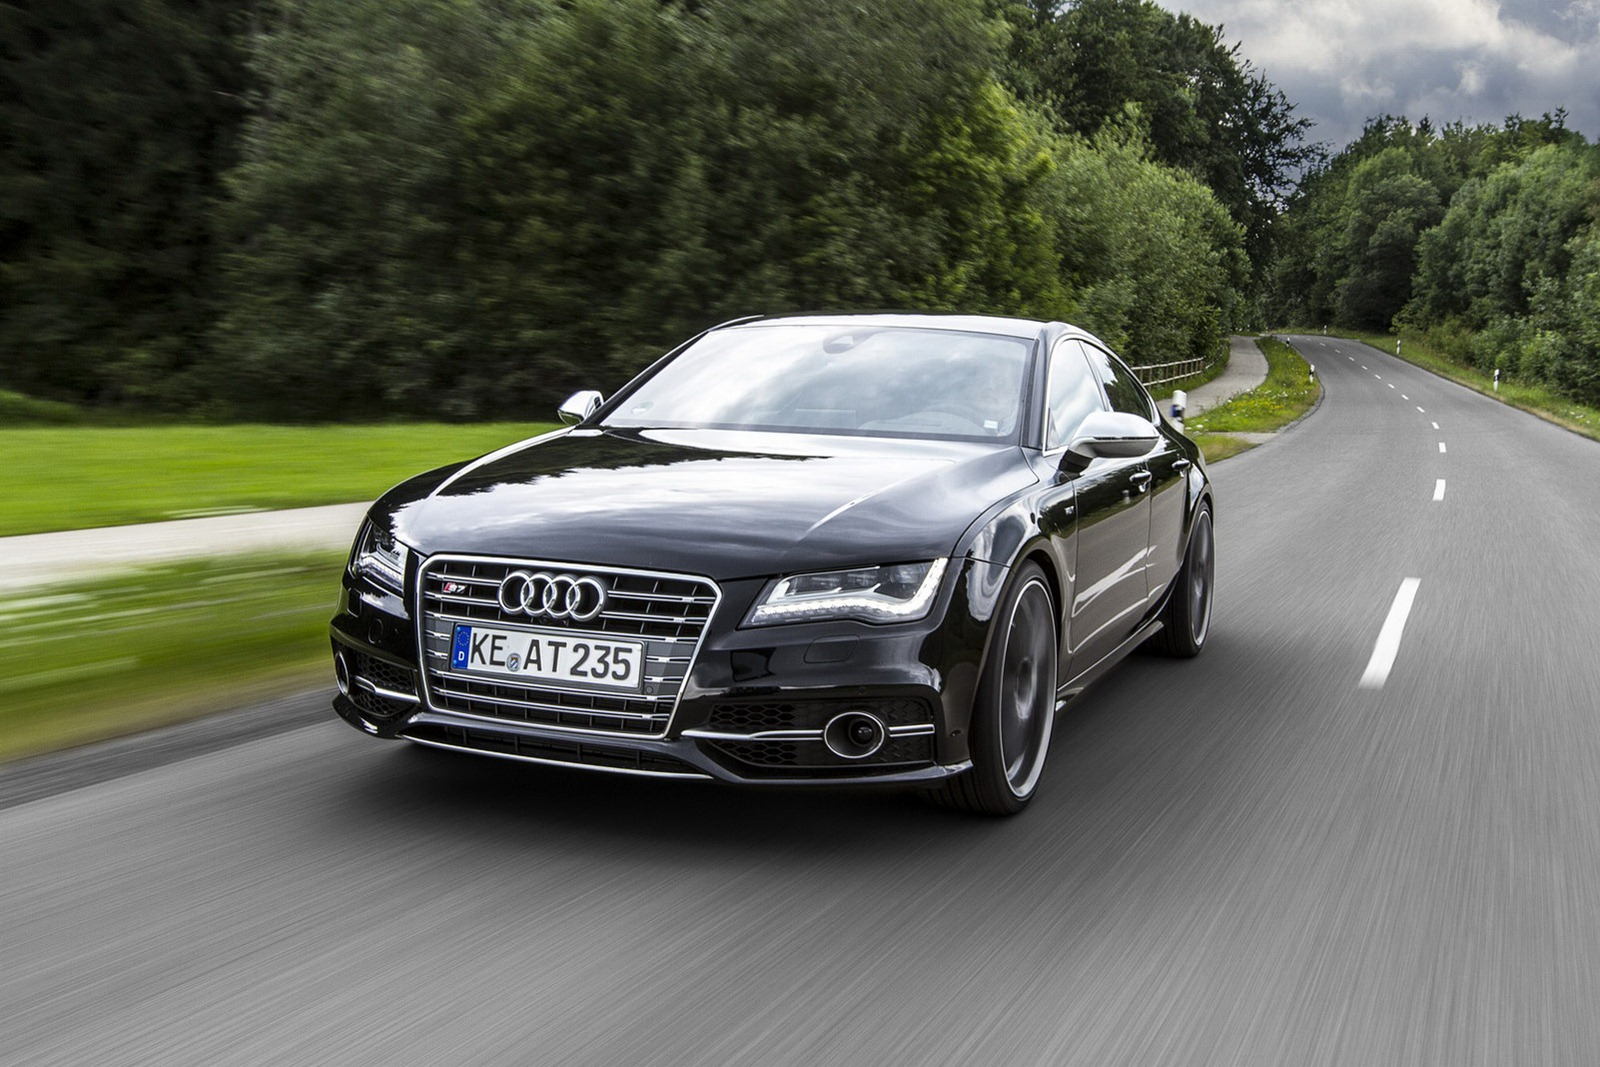 abt sportsline tuned audi s7 sportback with over 510 horsepower. Black Bedroom Furniture Sets. Home Design Ideas